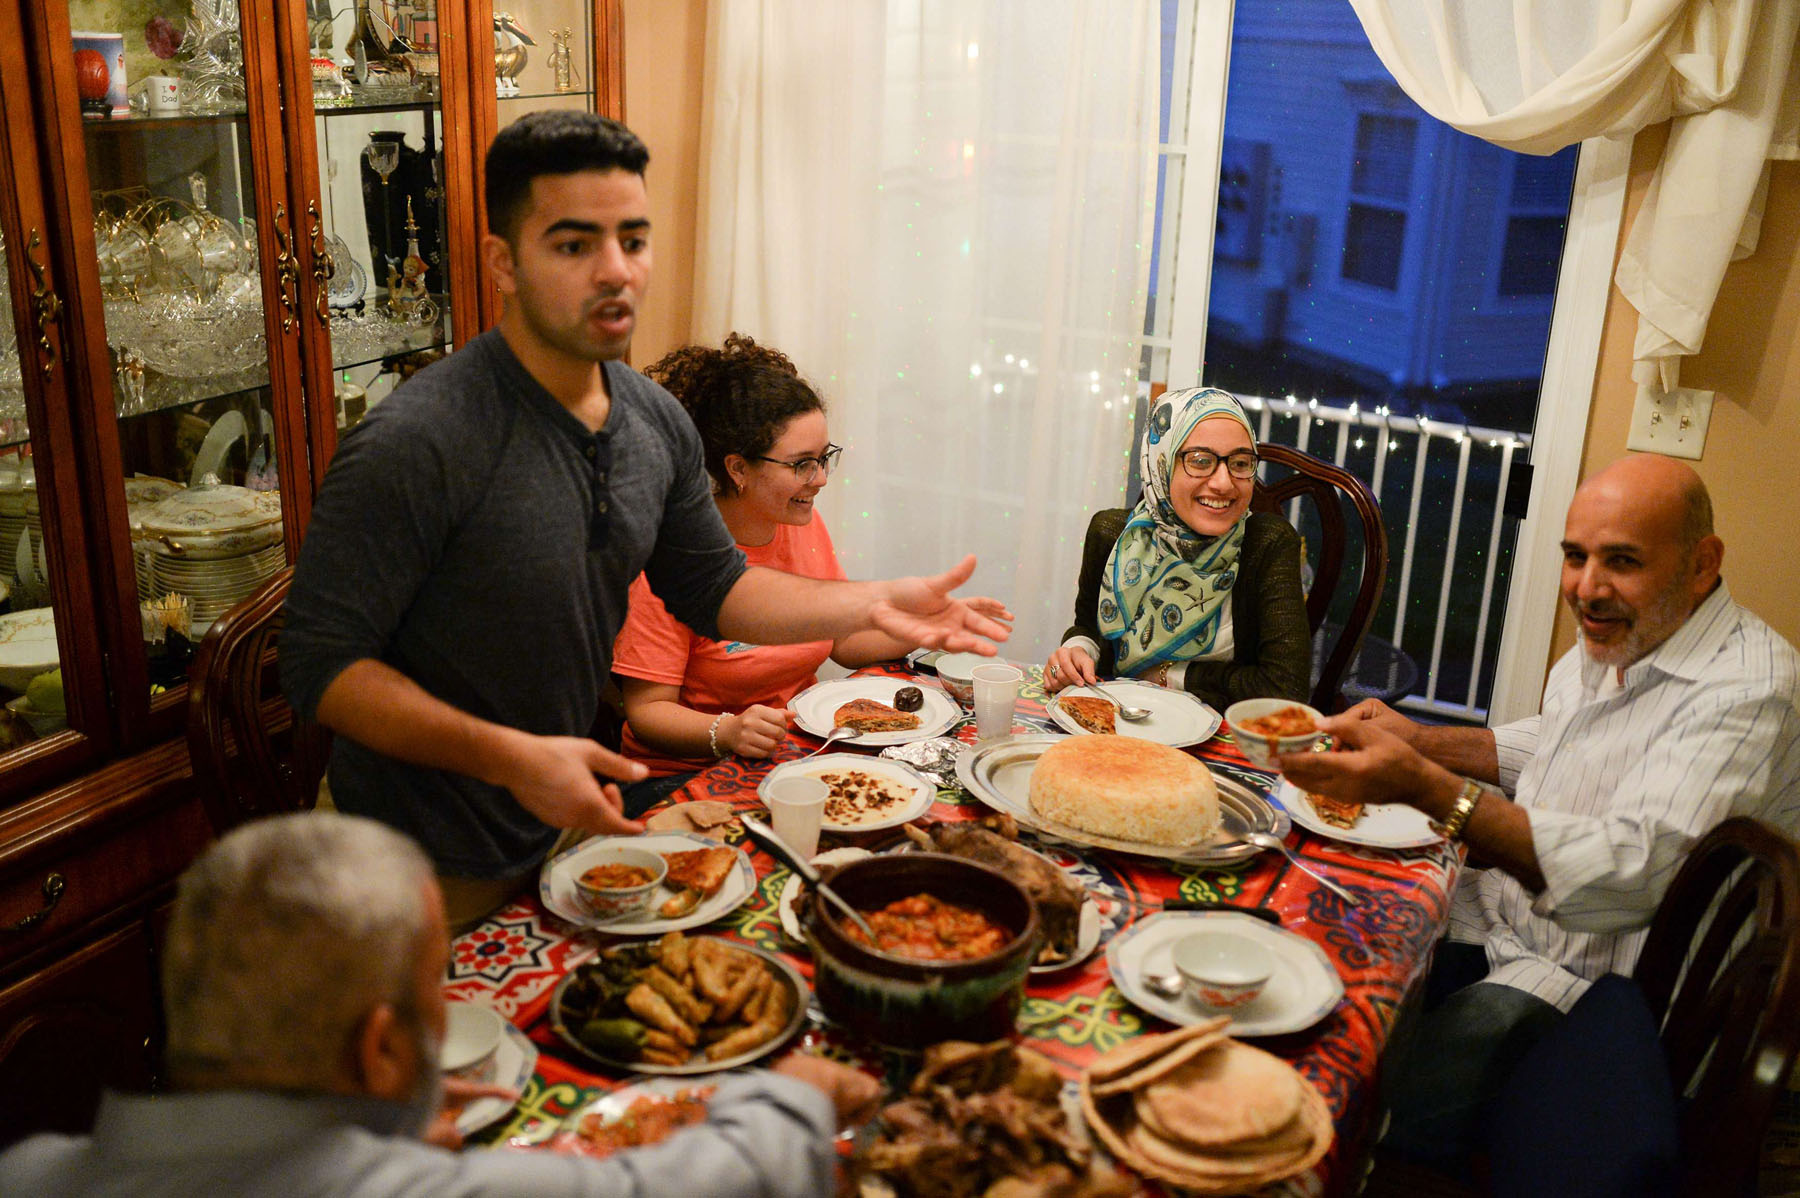 An Egyptian-American family and their friends enjoy dinner at their house in Manalapan, New Jersey.          (Reuters)